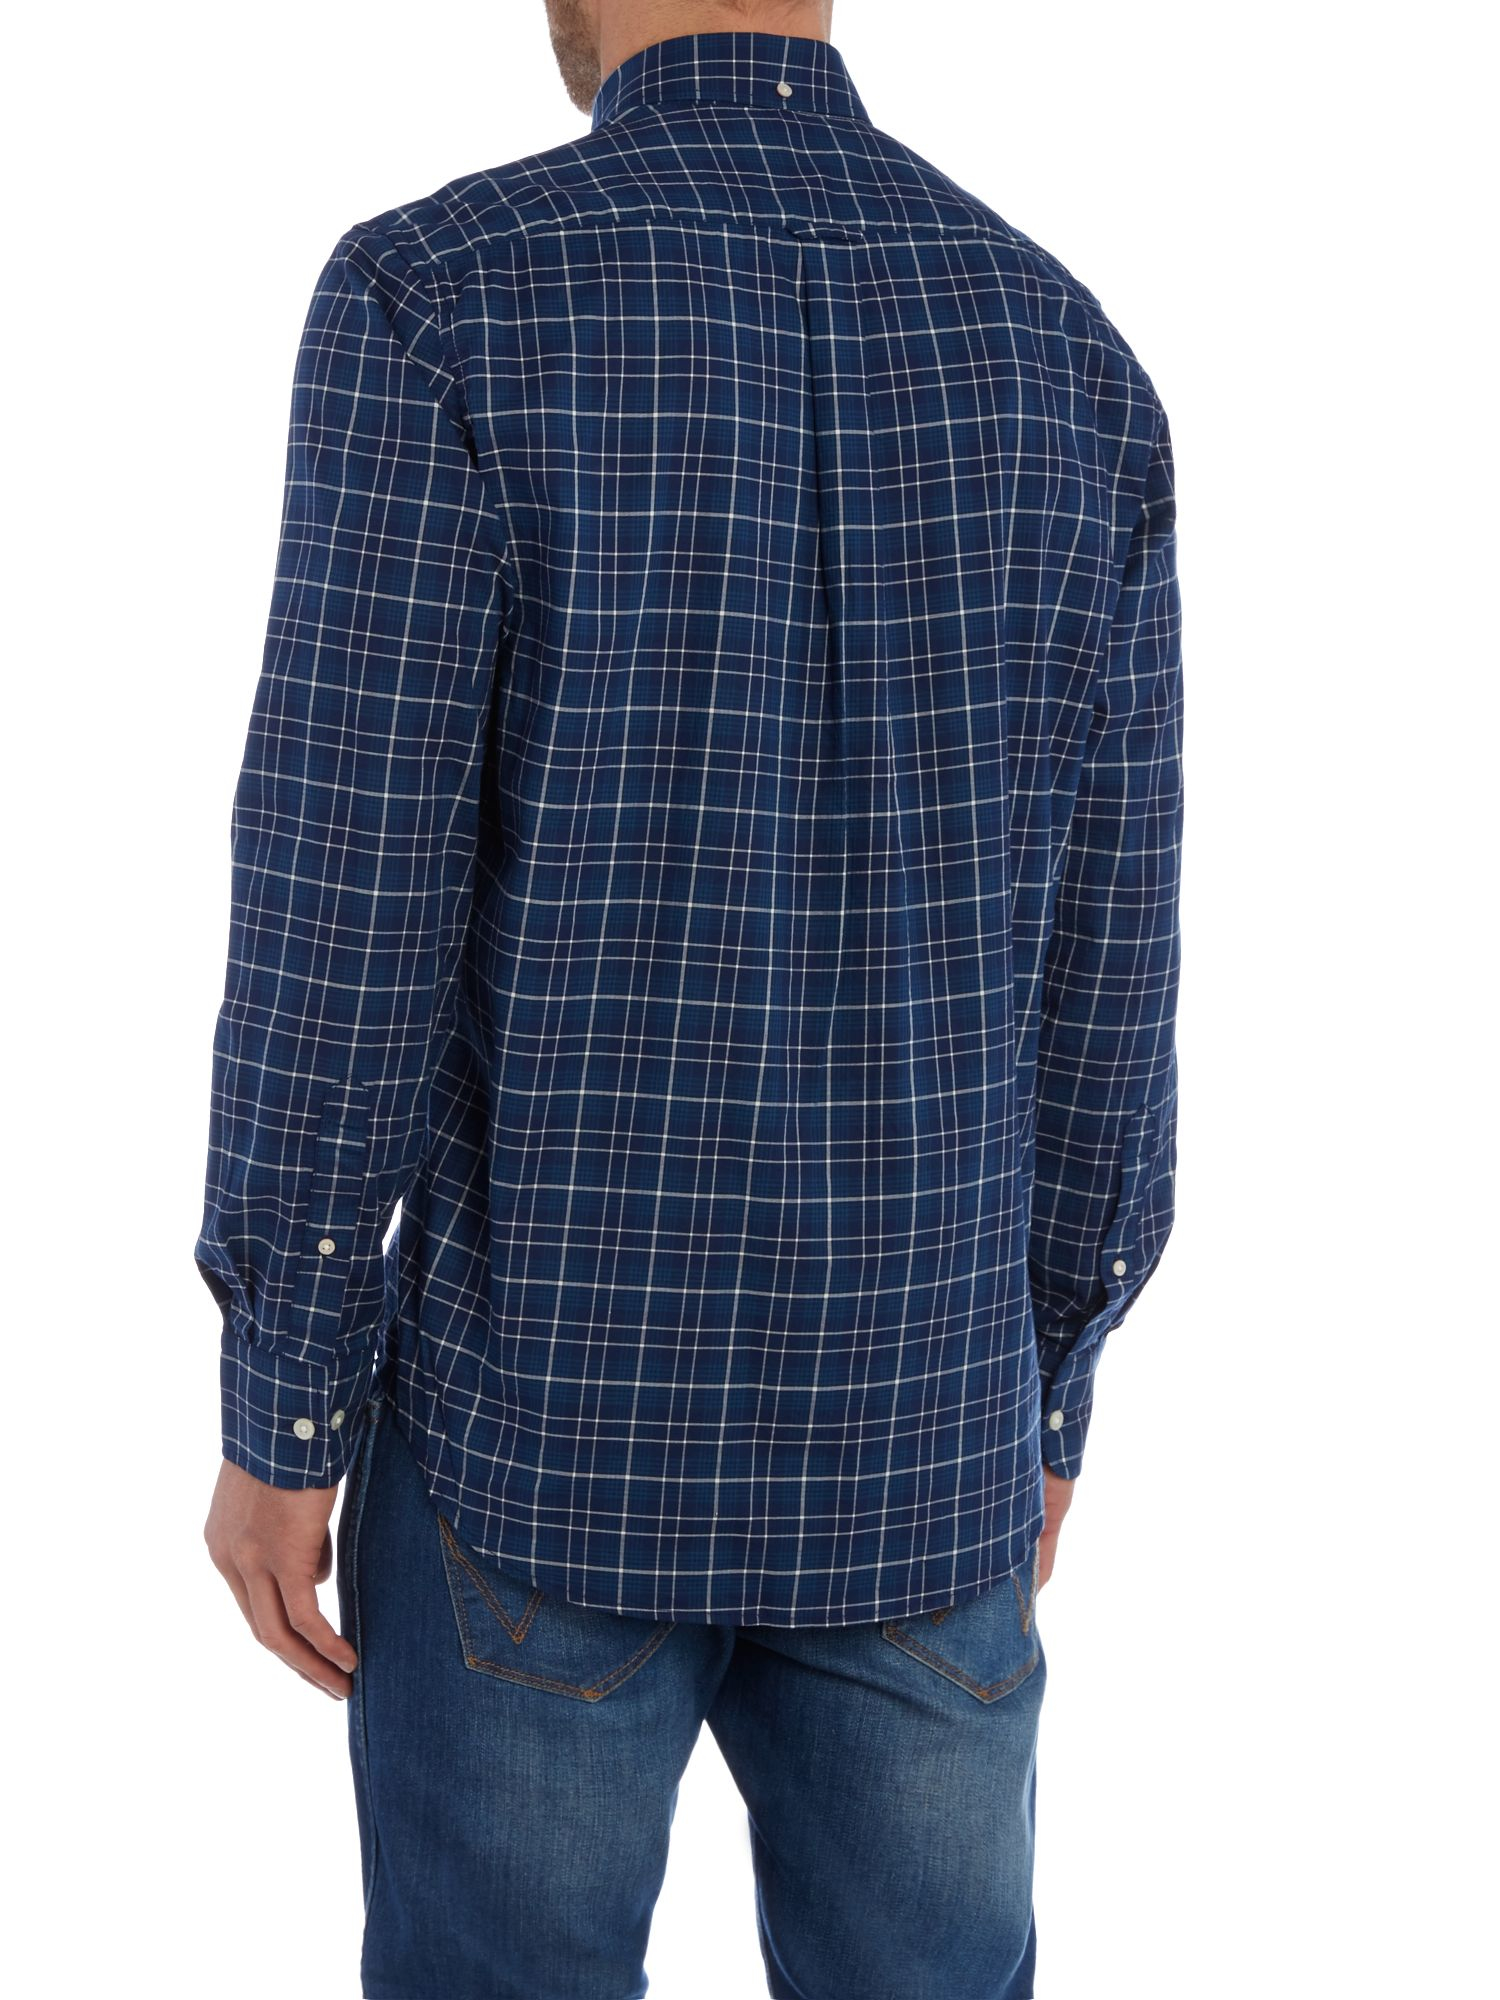 Find great deals on eBay for long sleeve plaid shirt. Shop with confidence. Skip to main content. eBay: Shop by category. New Listing Brooks Brothers Men's Long Sleee Blue and Red Plaid Long Sleeve Shirt Size M. Pre-Owned. $ Guaranteed by Fri, Oct. or Best Offer +$ shipping.